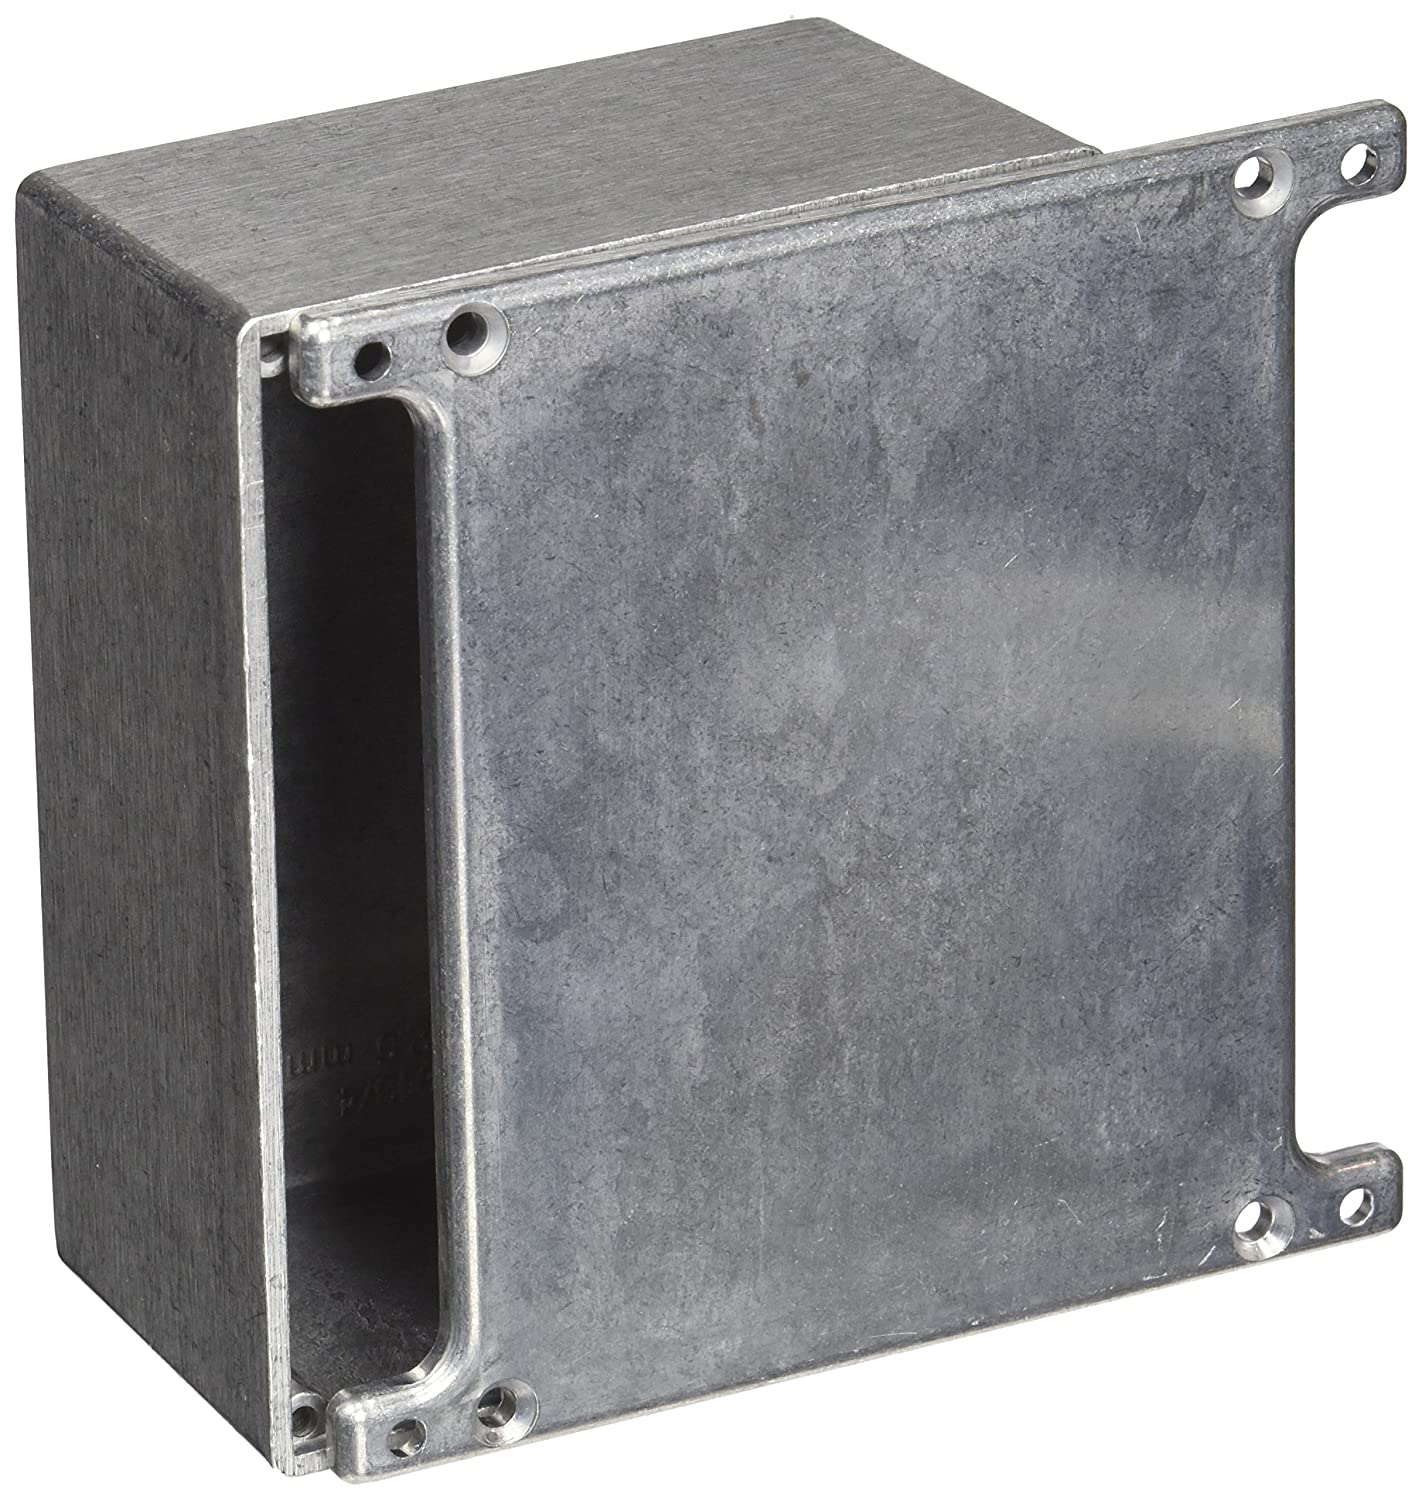 4-43//64 Length x 3-43//64 Width x 2-13//64 Height Natural Finish 4-43//64 Length x 3-43//64 Width x 2-13//64 Height BUD Industries CU-5234 Die Cast Aluminum Econobox with Mounting Bracket Cover